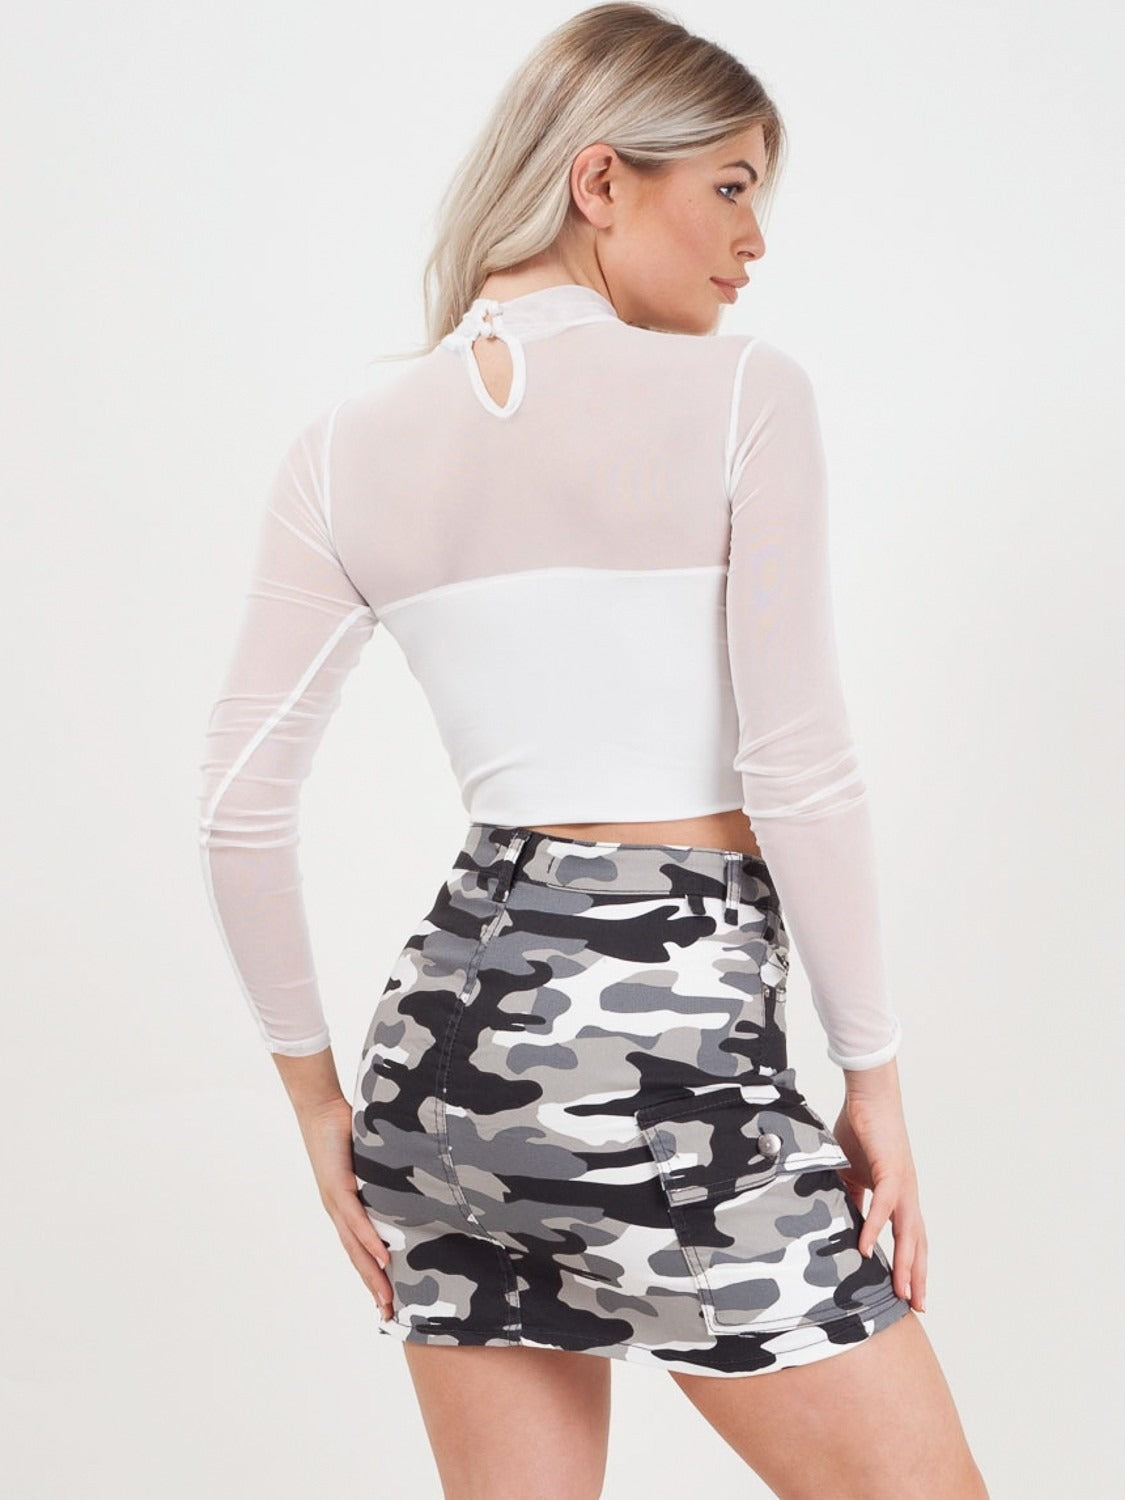 a4a55770754 White Mesh Panel Crop Top - @charvj - Storm Desire